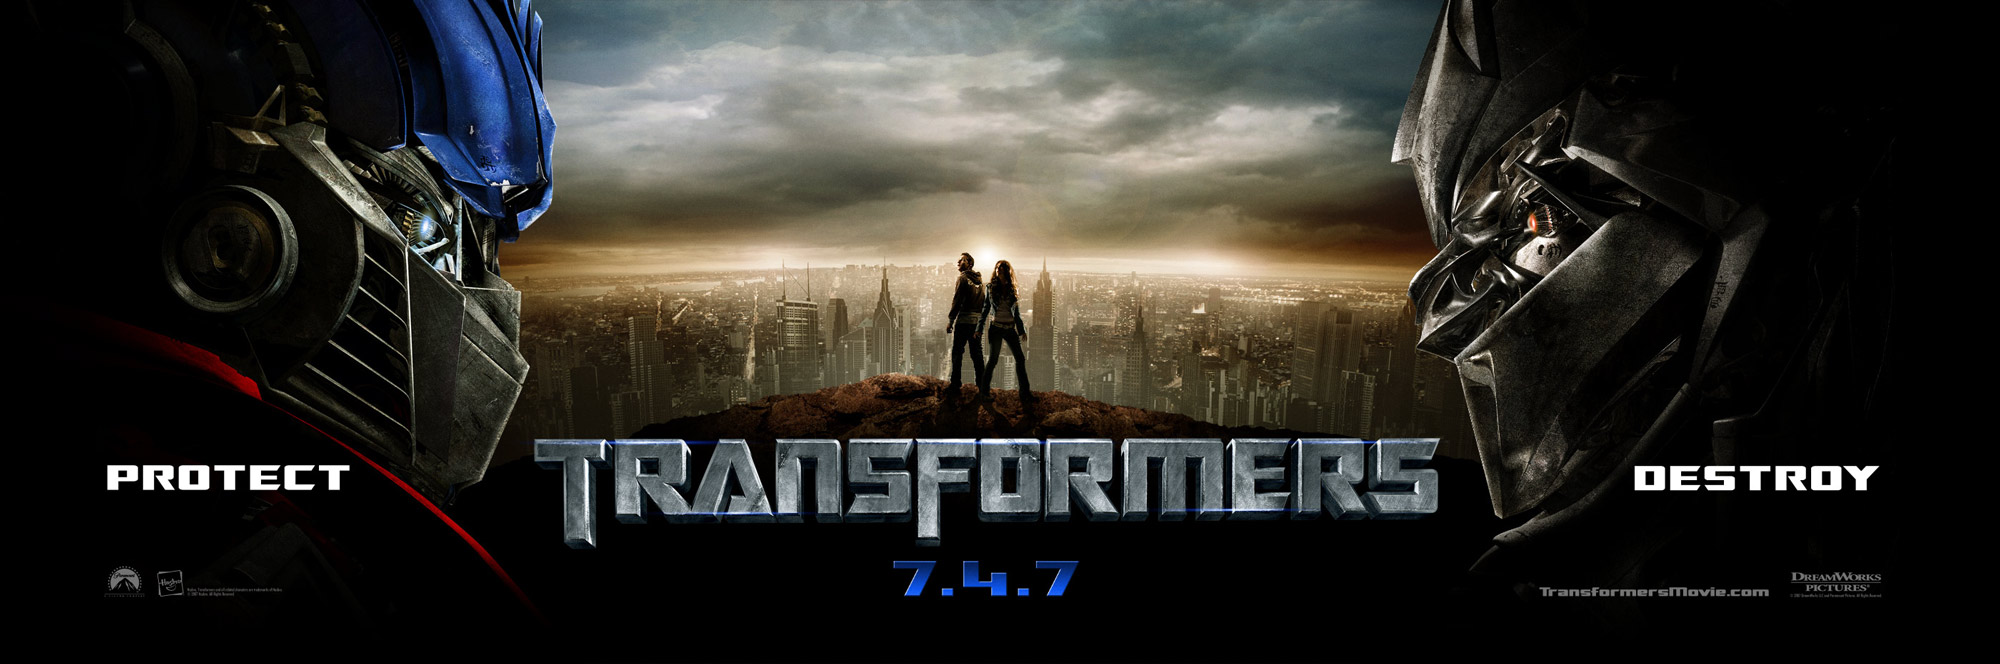 Transformers News: Paramount looks to expand Transformers film franchise with spin-offs and more sequels